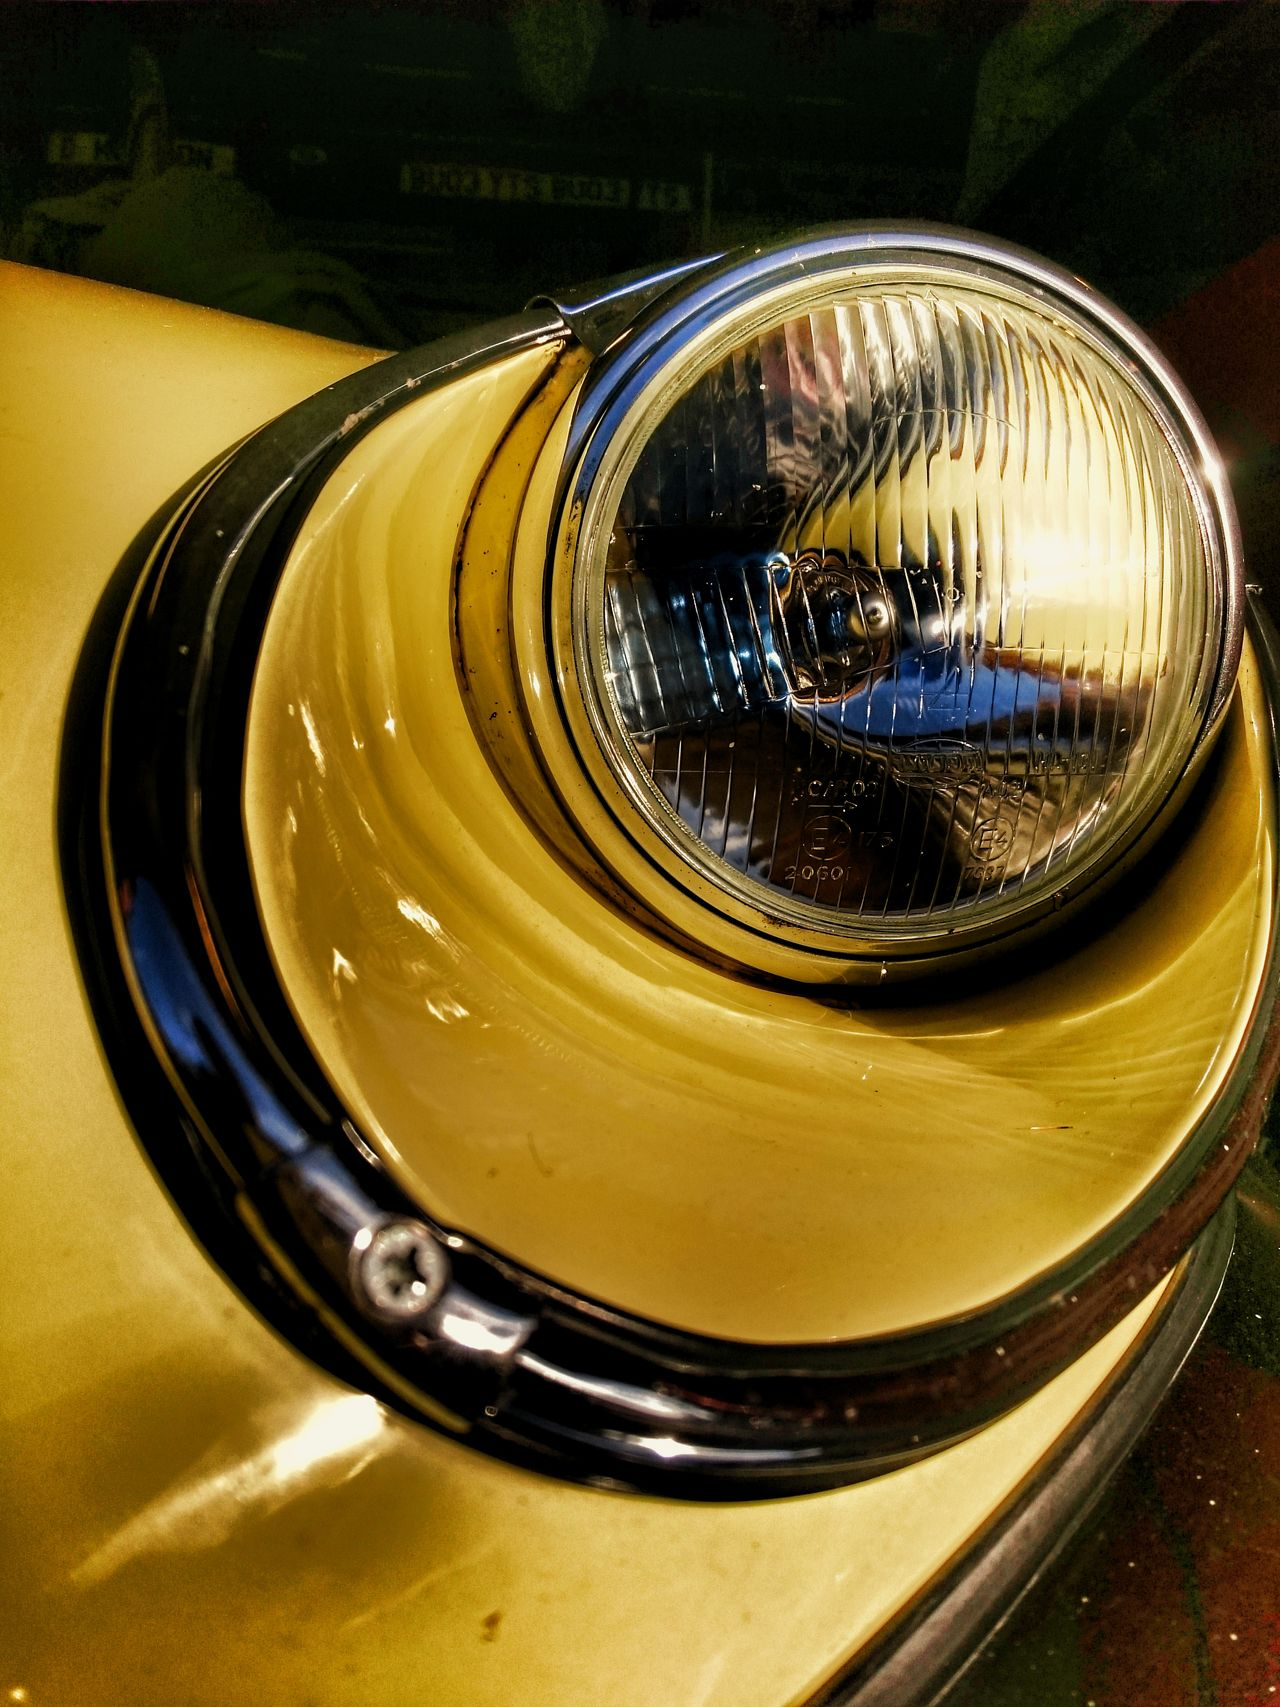 JAGUAR The World Needs More Yellow Classic Style Classic Elegance Blast From The Past Classic Classic Car Design Automotive Photography Headlight Jaguar XJ8 Jaguar Xj8 E Type Classic Beauty Chrome Sweet Chrome Curves And Lines